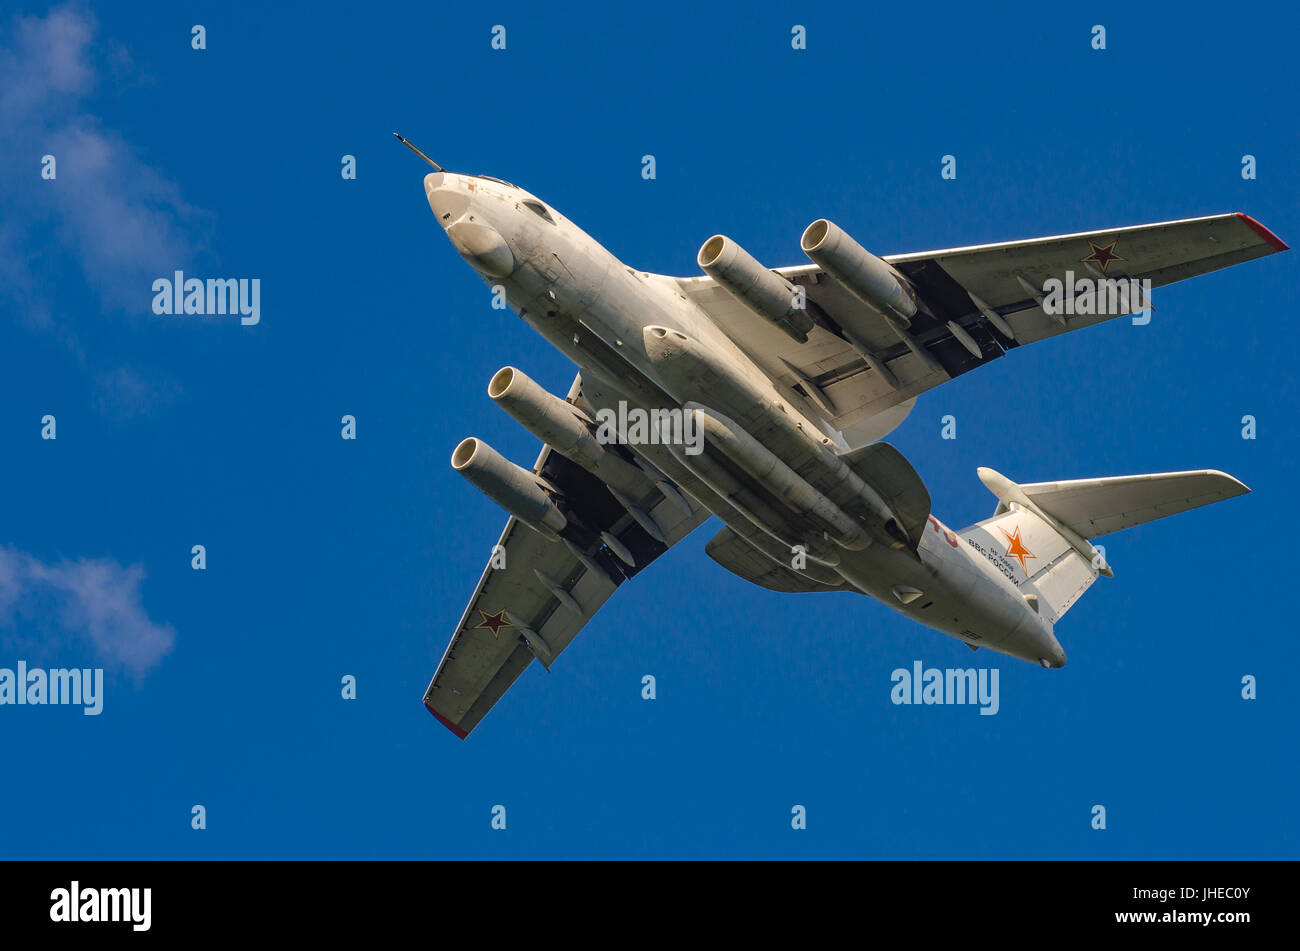 The plane on takeoff - Stock Image